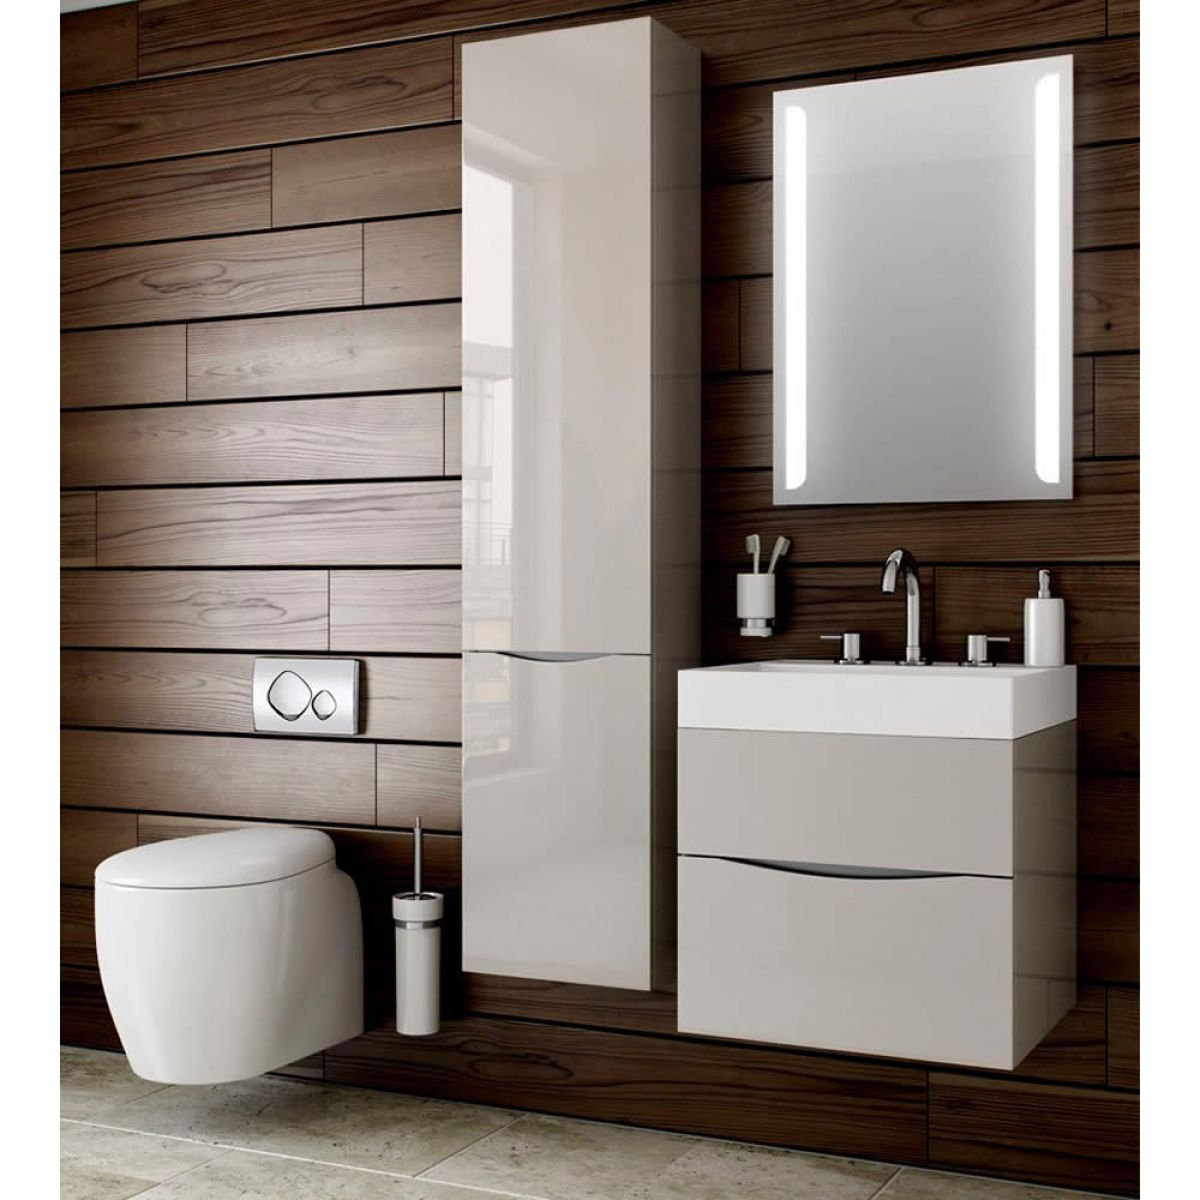 Bauhaus glide ii 70 wall hung vanity unit with basin for Furniture ideas for bathroom